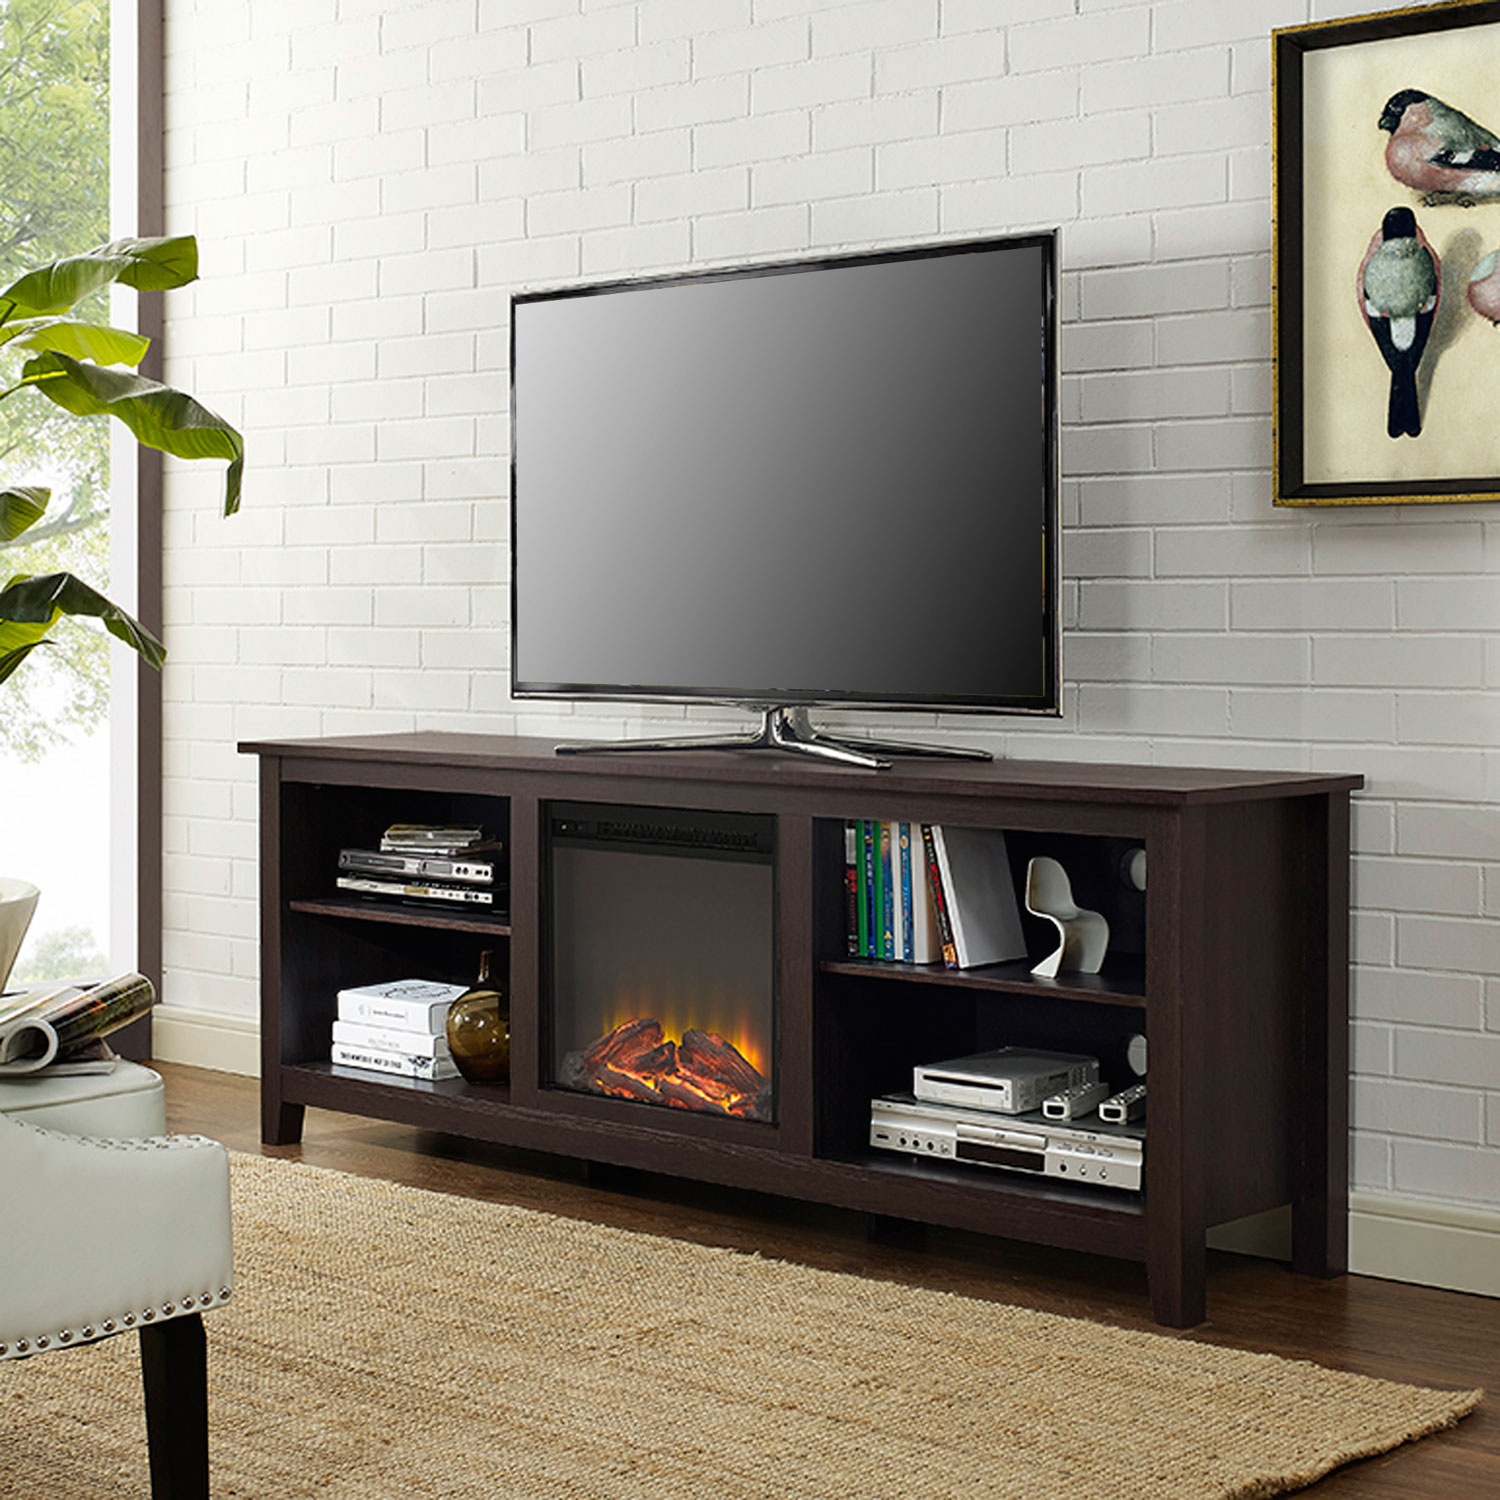 Walker Edison Furniture Co. 70 Inch Fireplace Tv Stand Espresso Intended For Valencia 60 Inch Tv Stands (Photo 9 of 30)